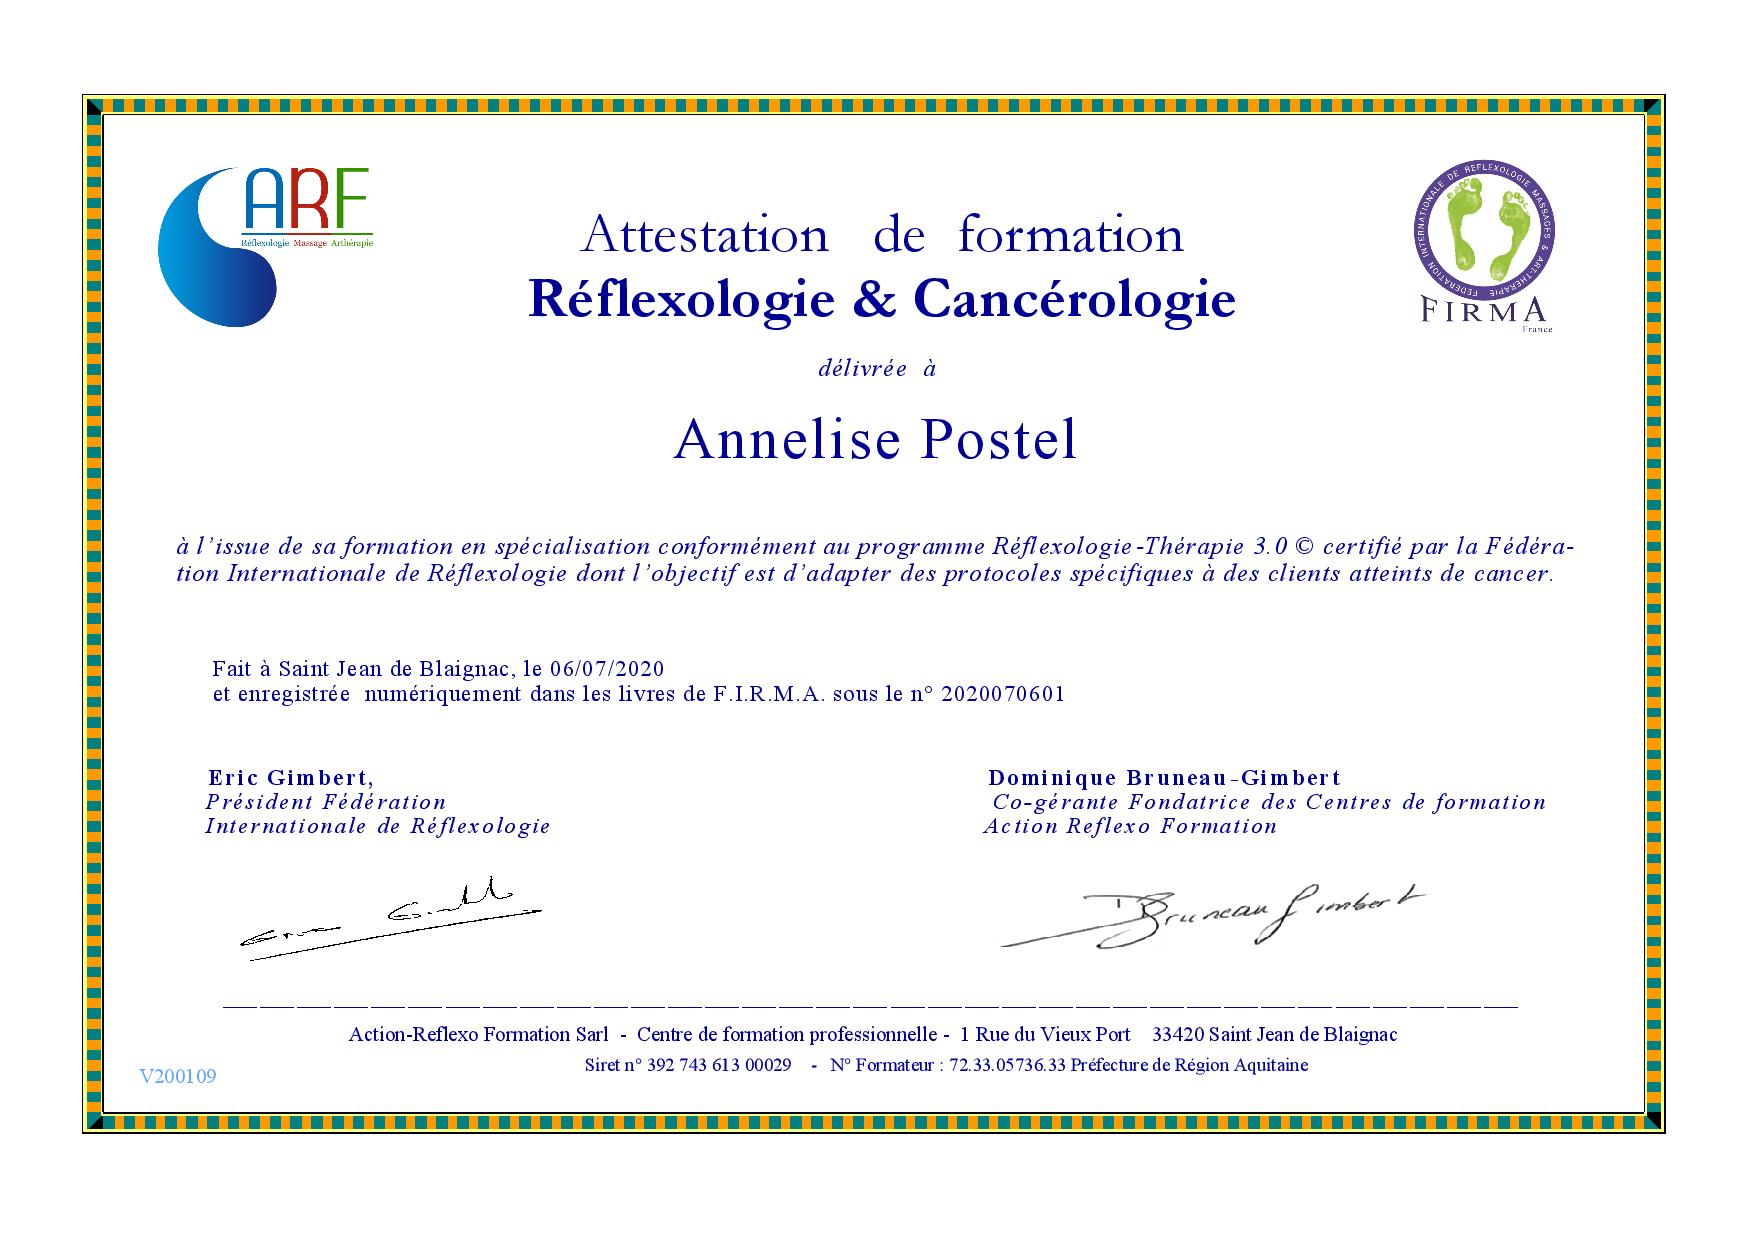 Arf Attestation Formation Oncologie 2020 07 Postel Annelise Page 001